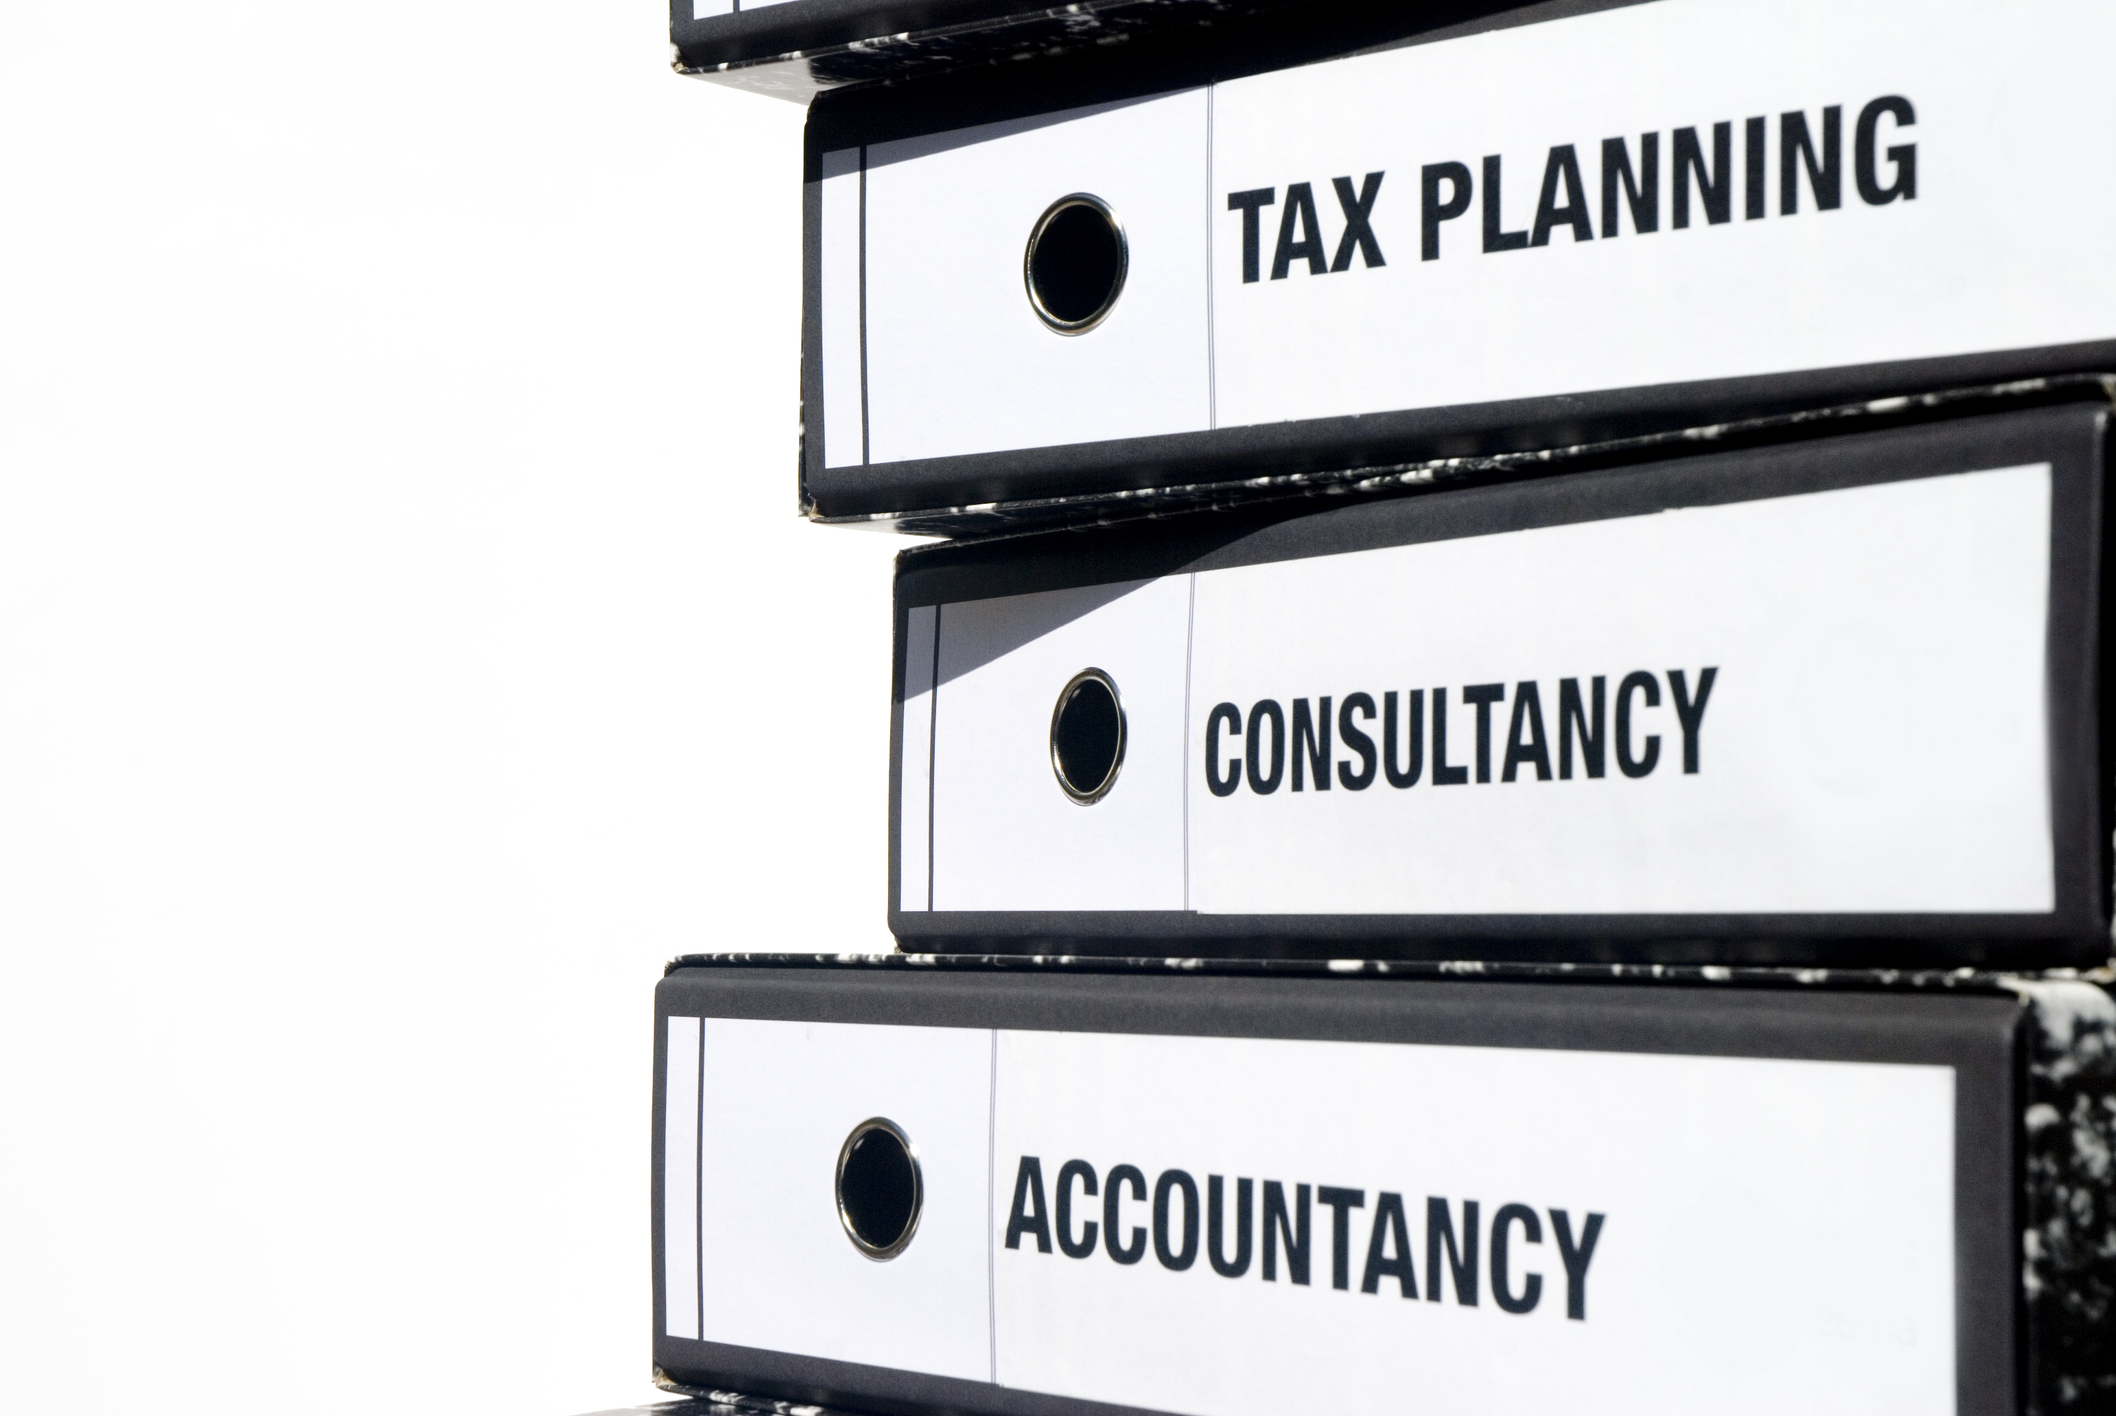 Is lack of practical work experience stopping you from getting your Ideal accounting job?